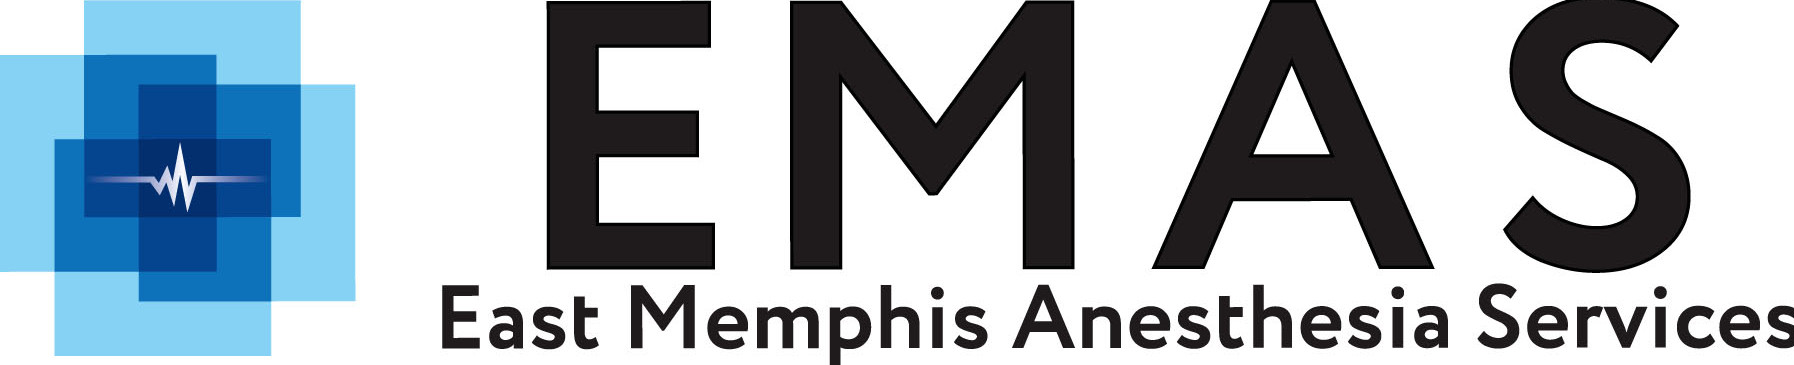 East Memphis Anesthesia Services